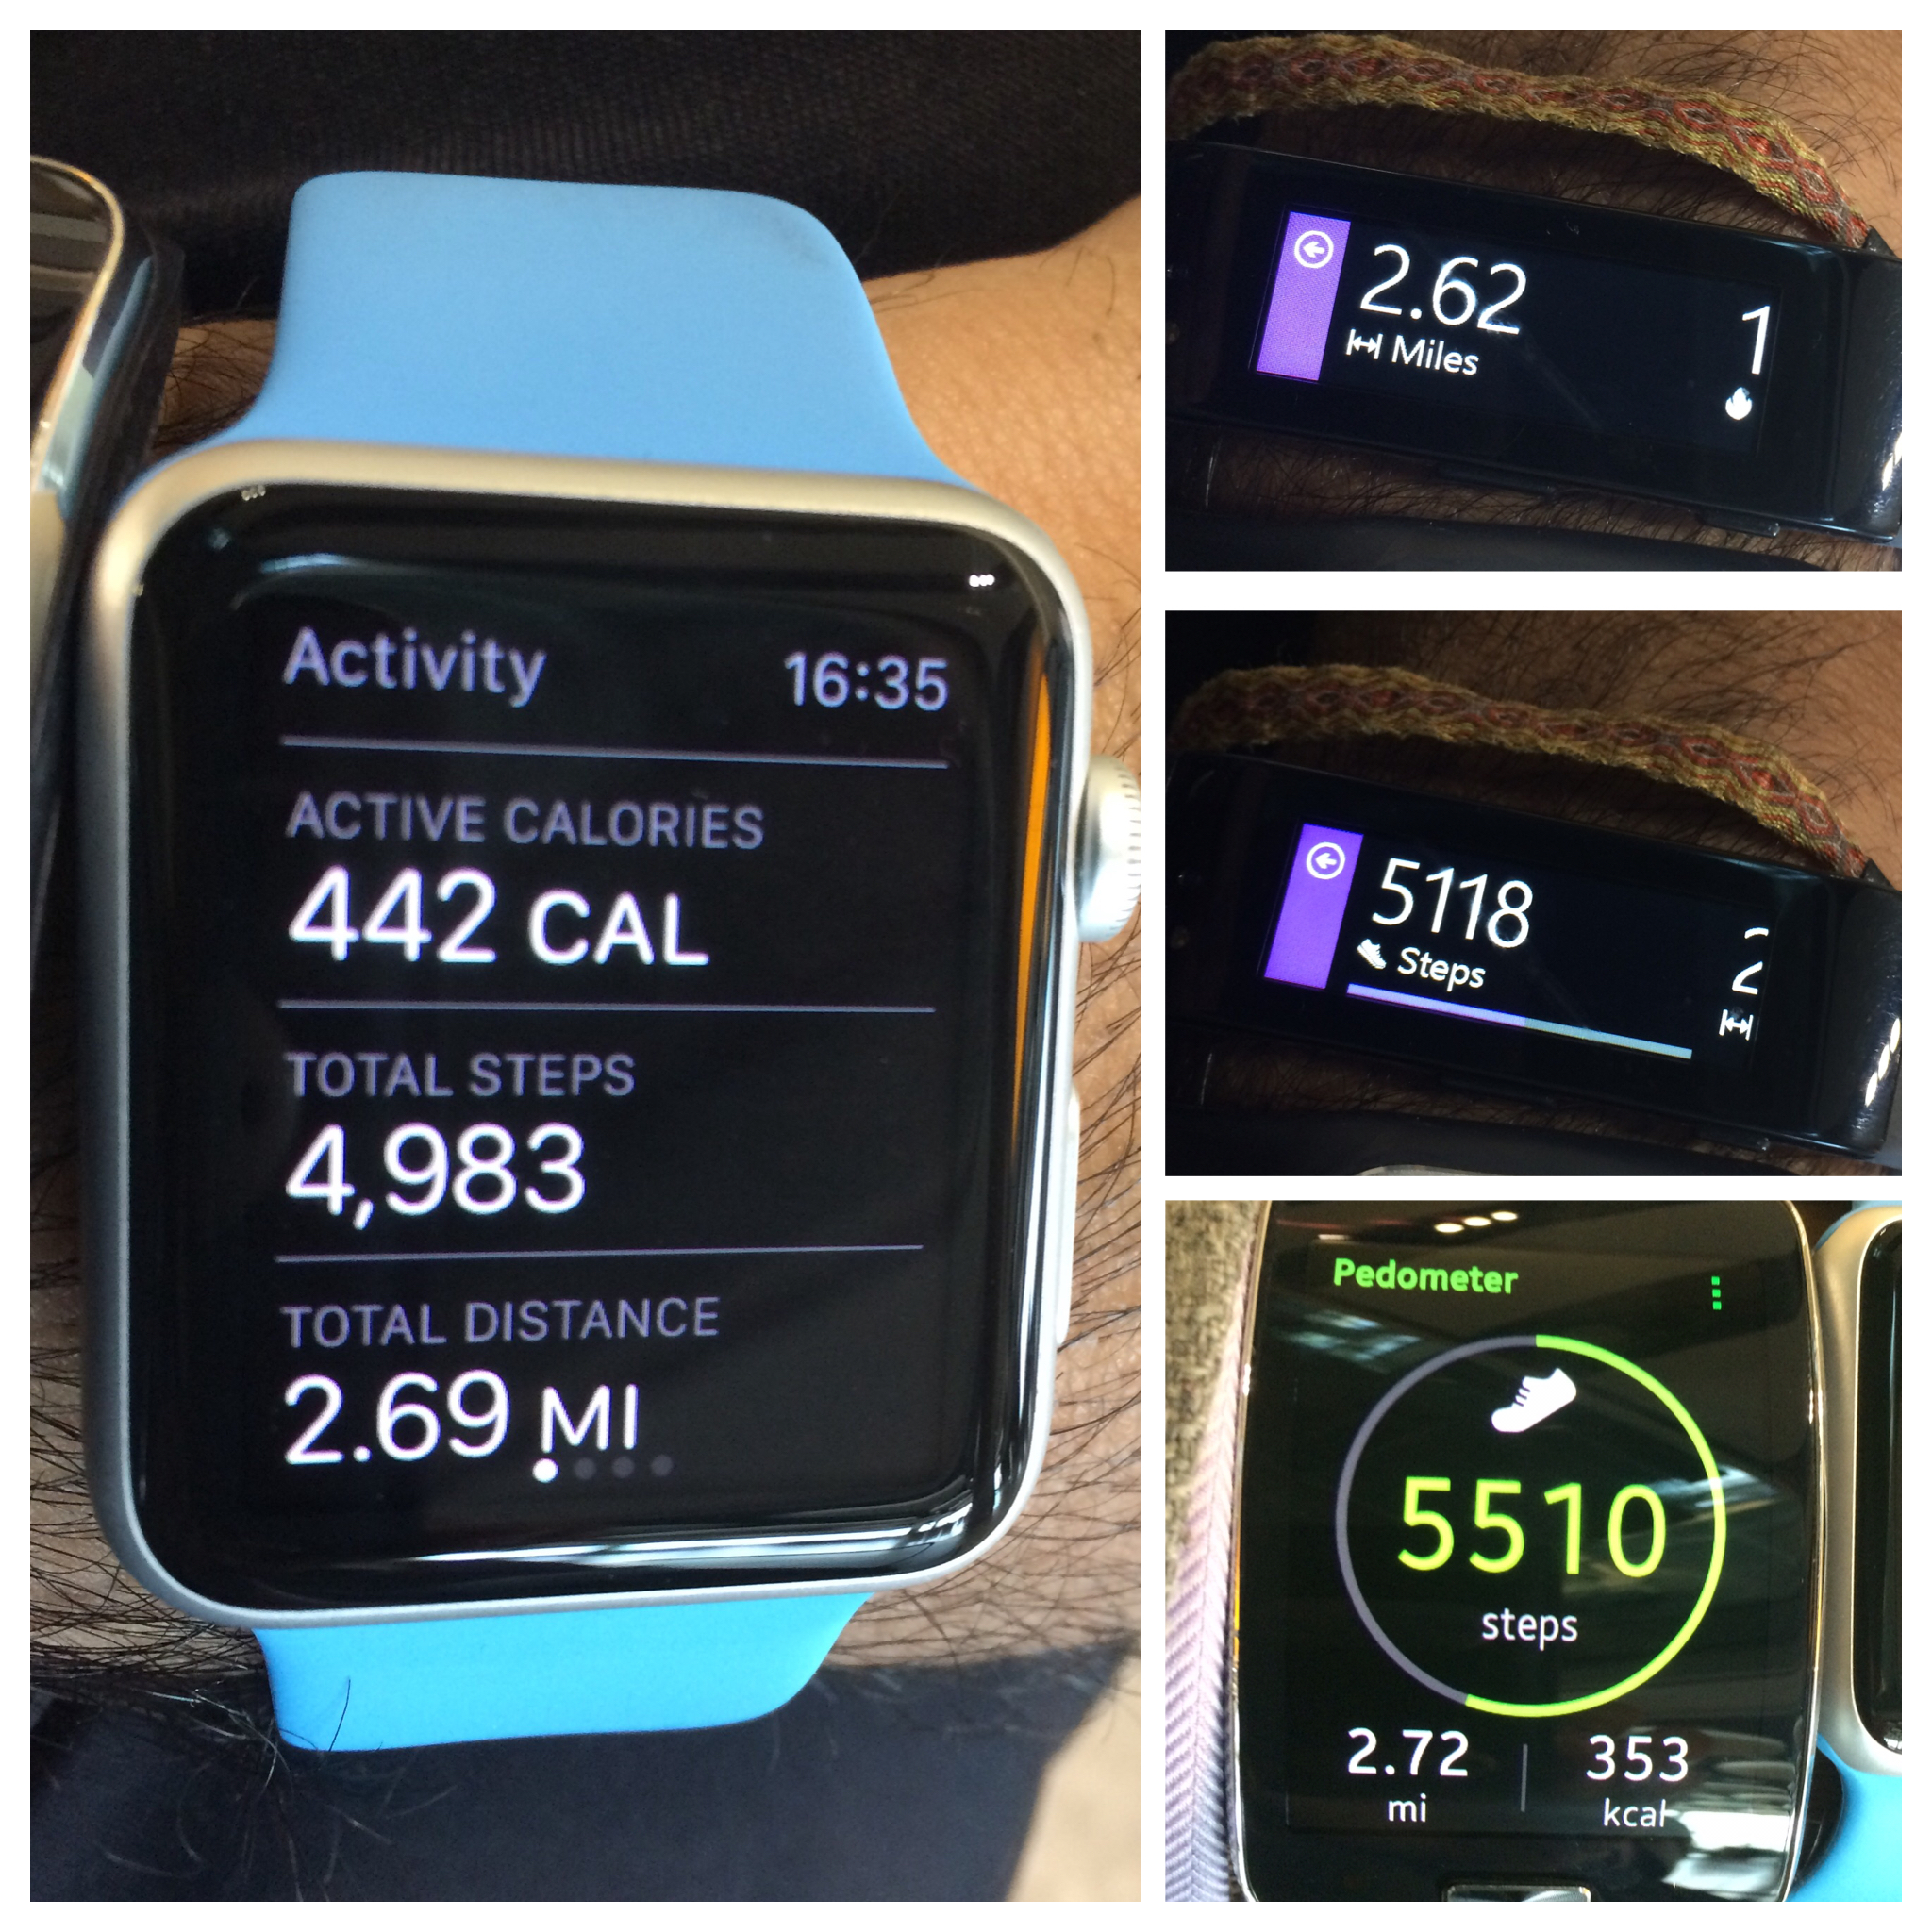 Apple Watch (left), Microsoft Band (top right), Gear S (bottom right)